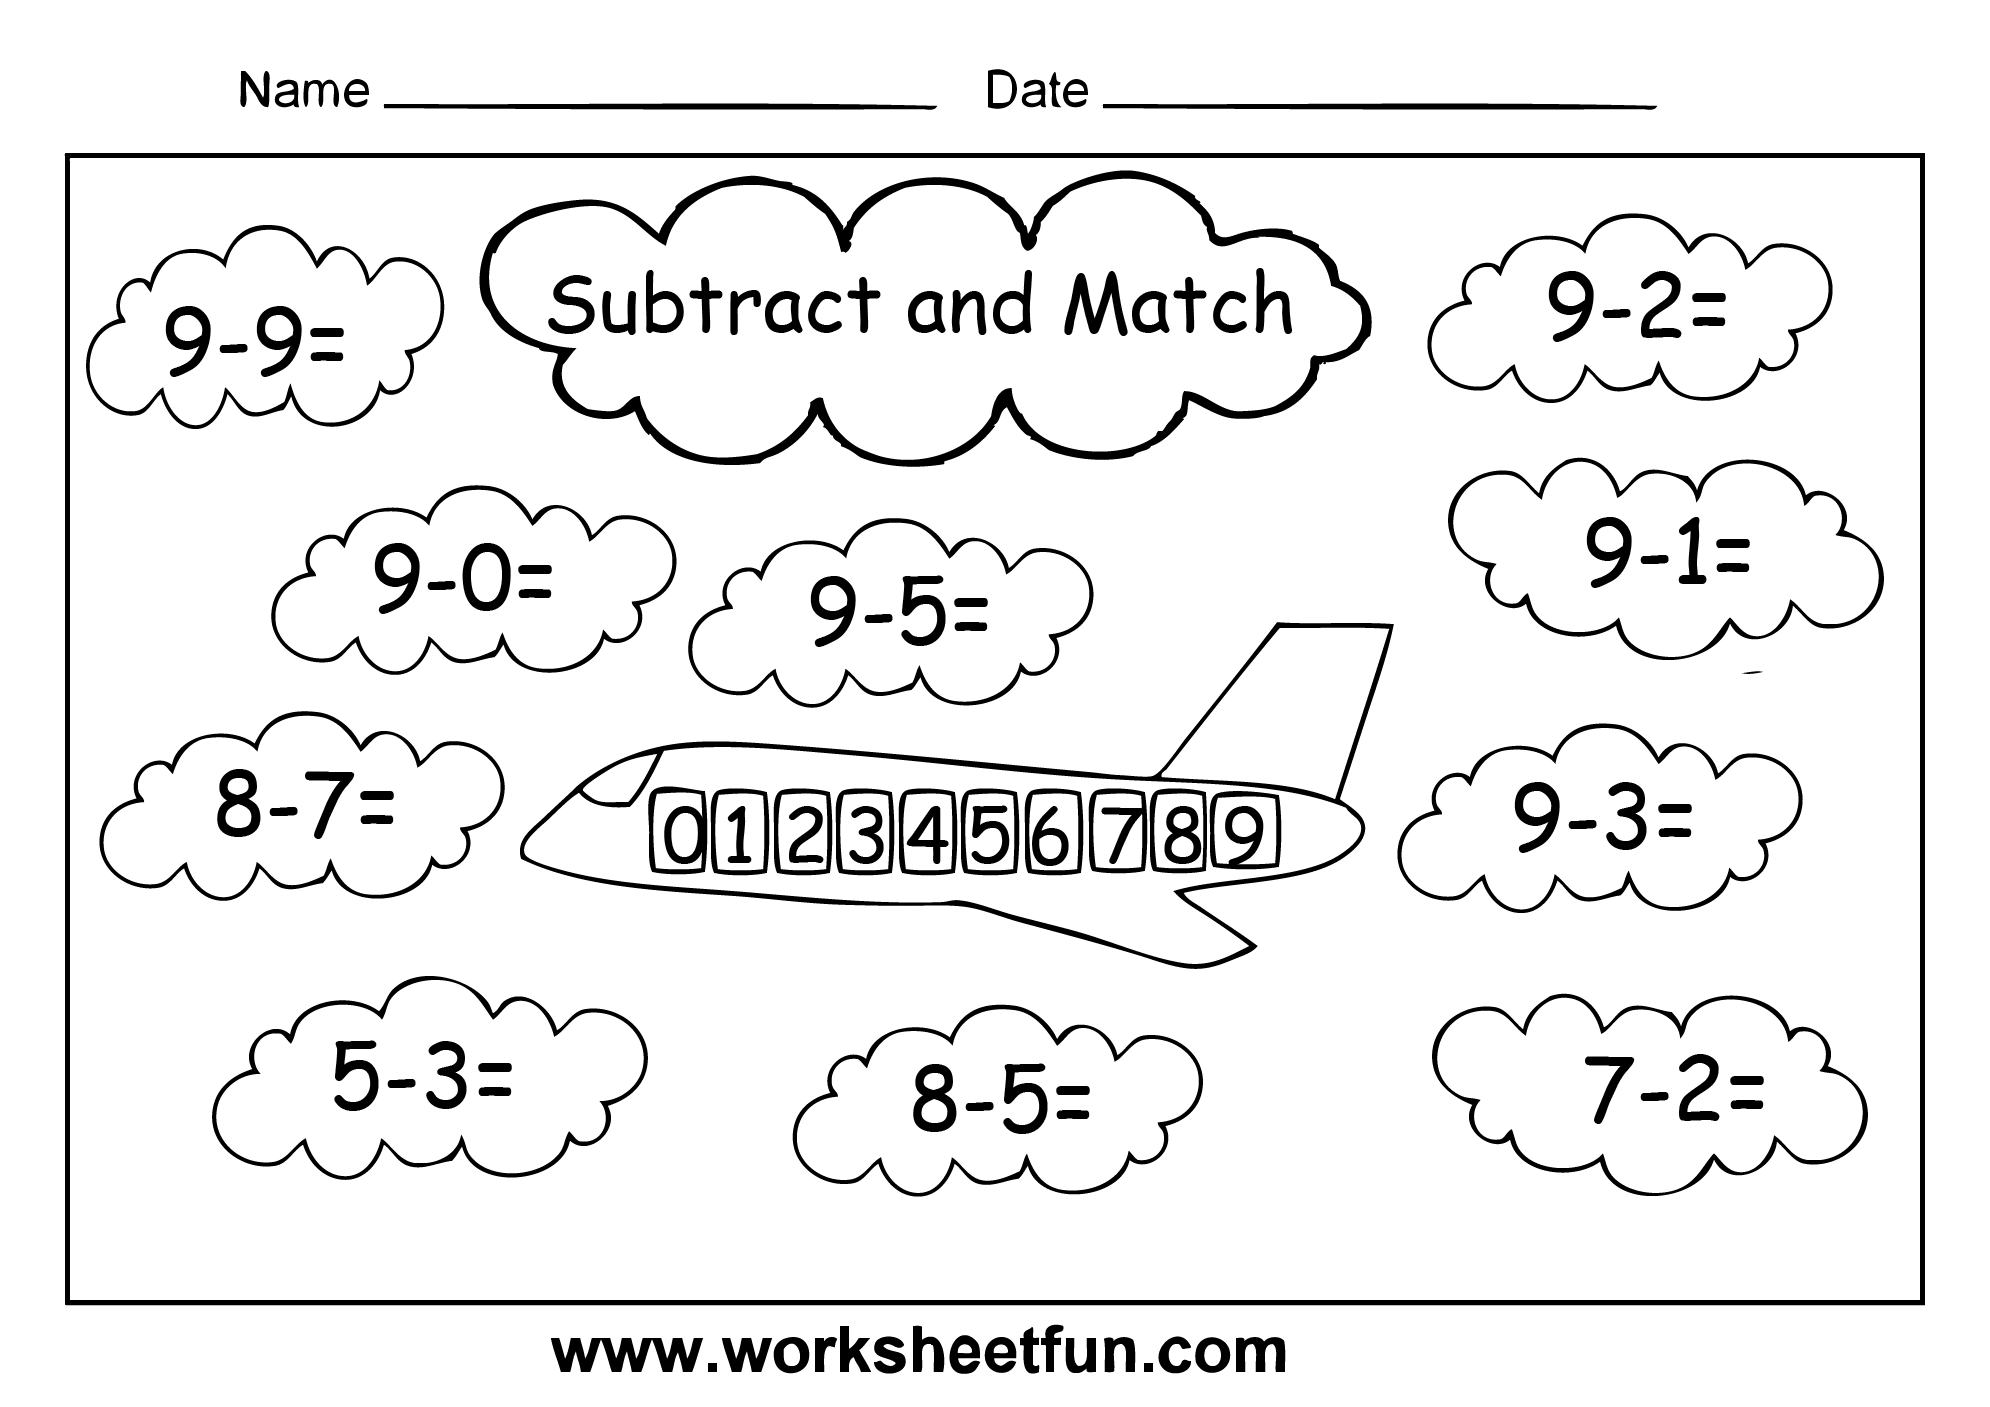 math worksheet : 1000 images about worksheets on pinterest  first grade math  : First Grade Subtraction Worksheets